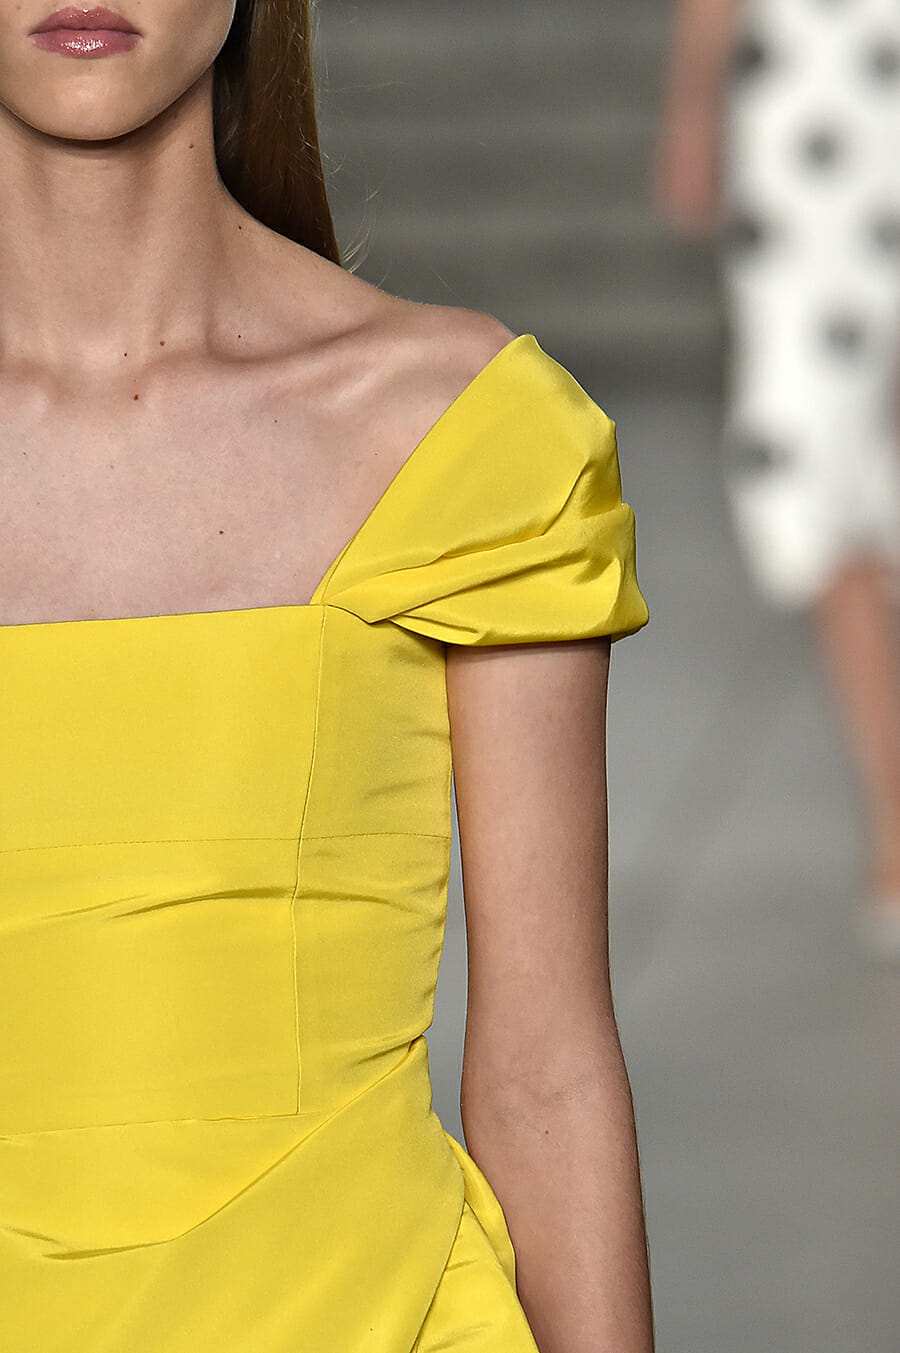 Carolina-Herrera-New-York-Fashion-Week-Spring-Summer-2018-NY-September-2017-look28-detail1